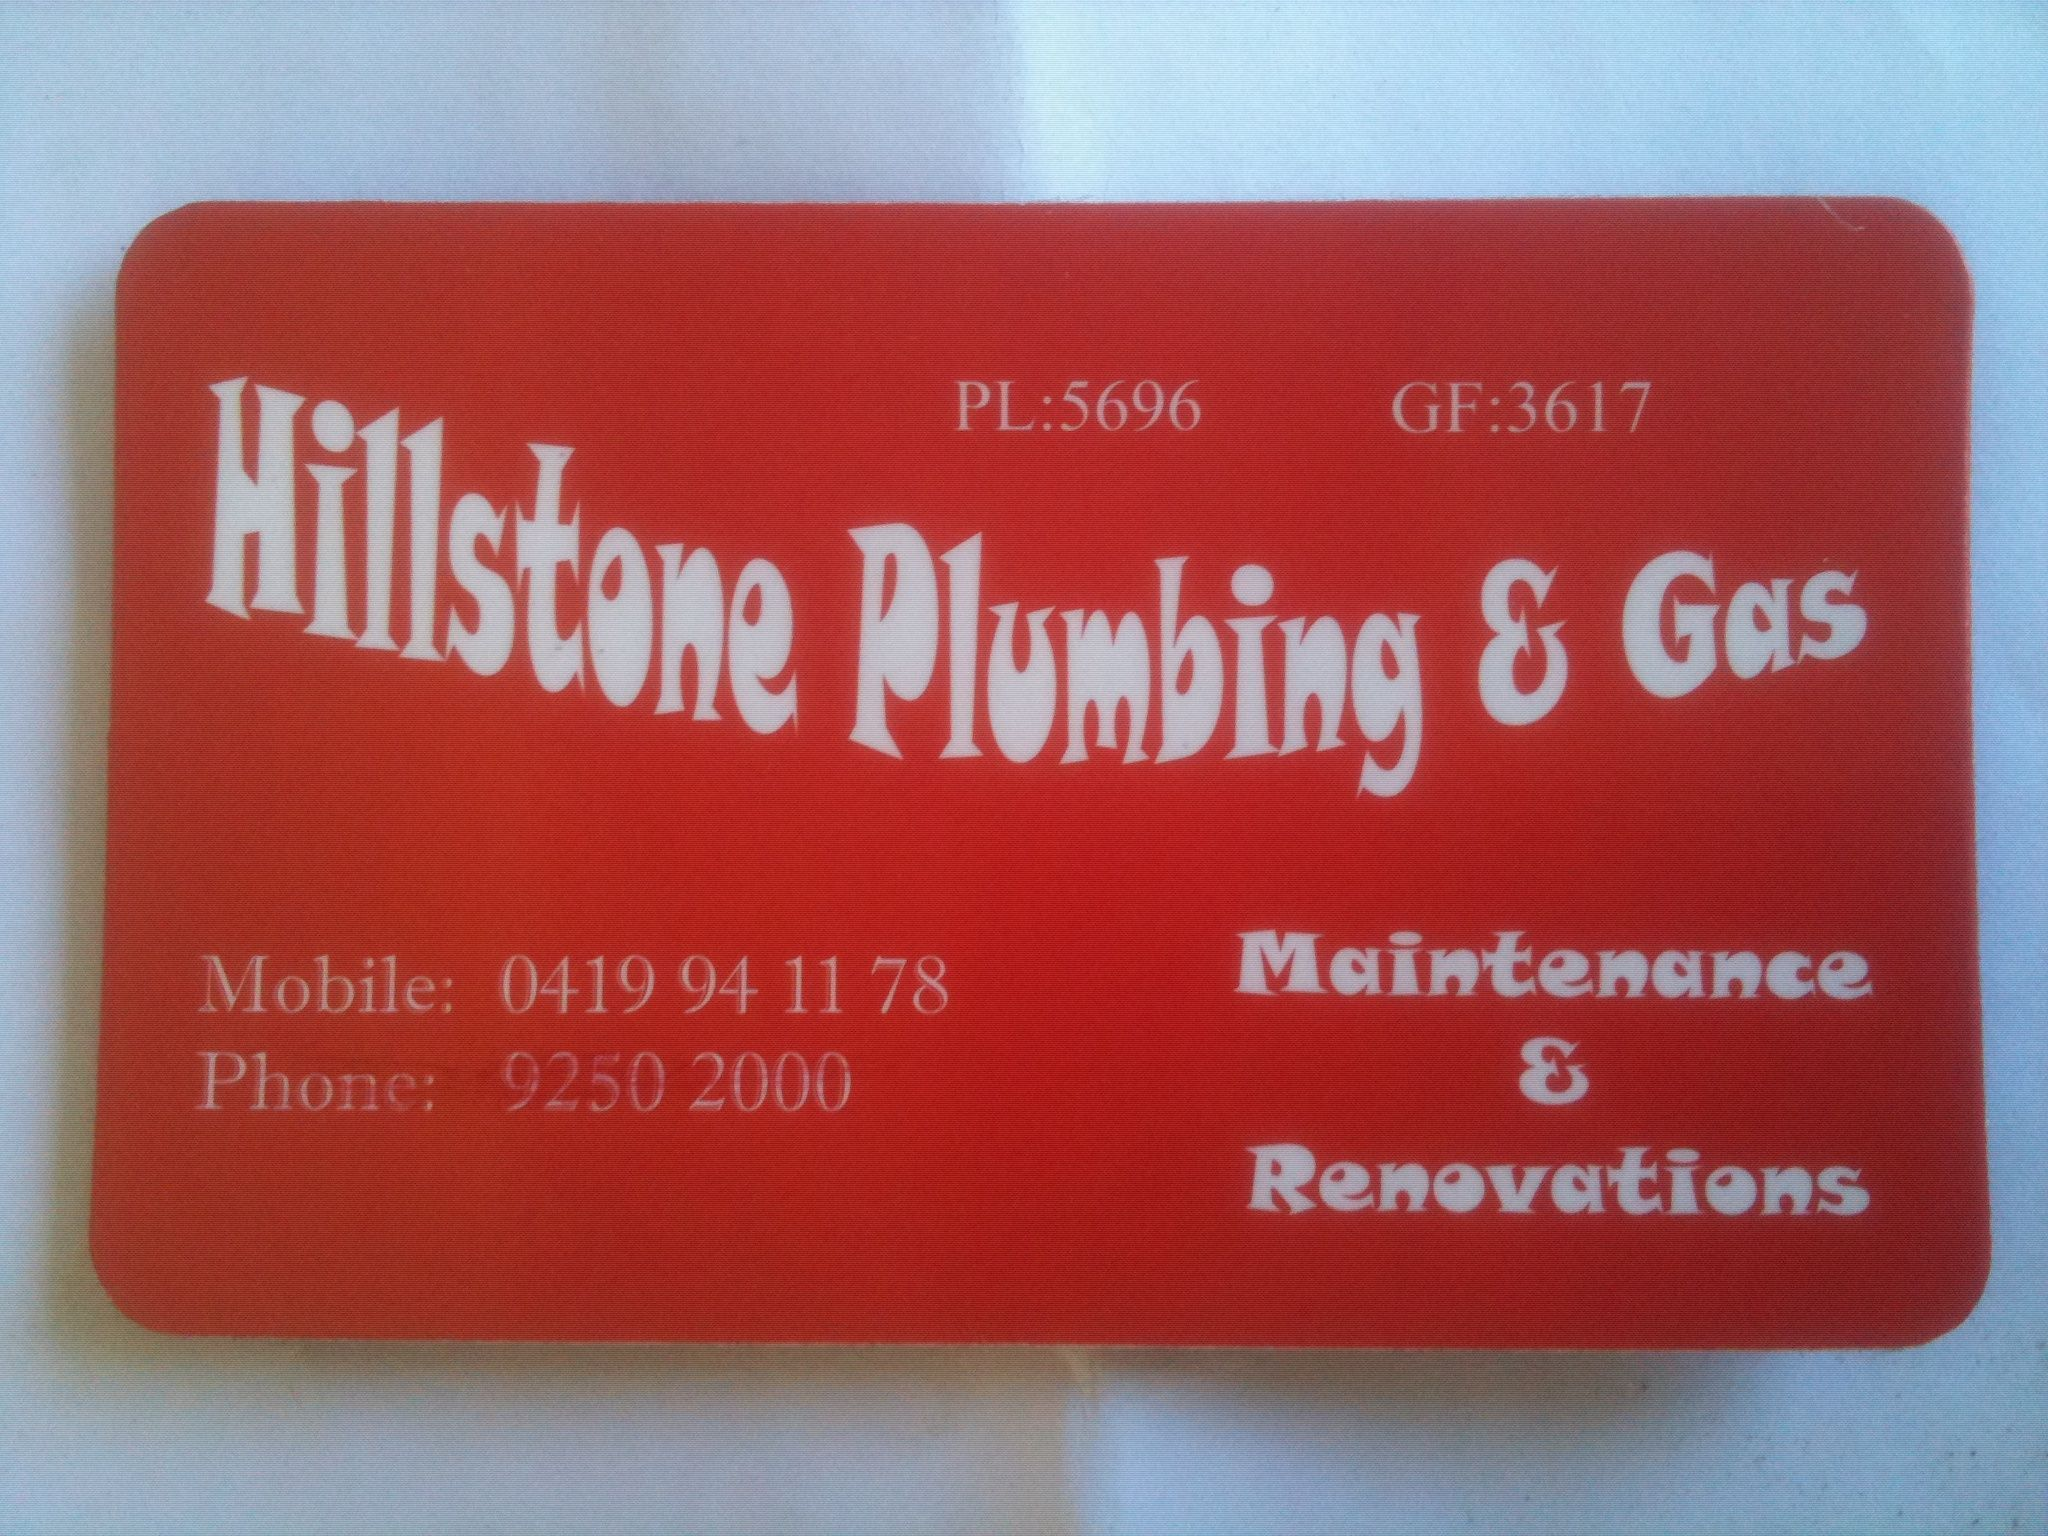 Hillstone Plumbing and Gas